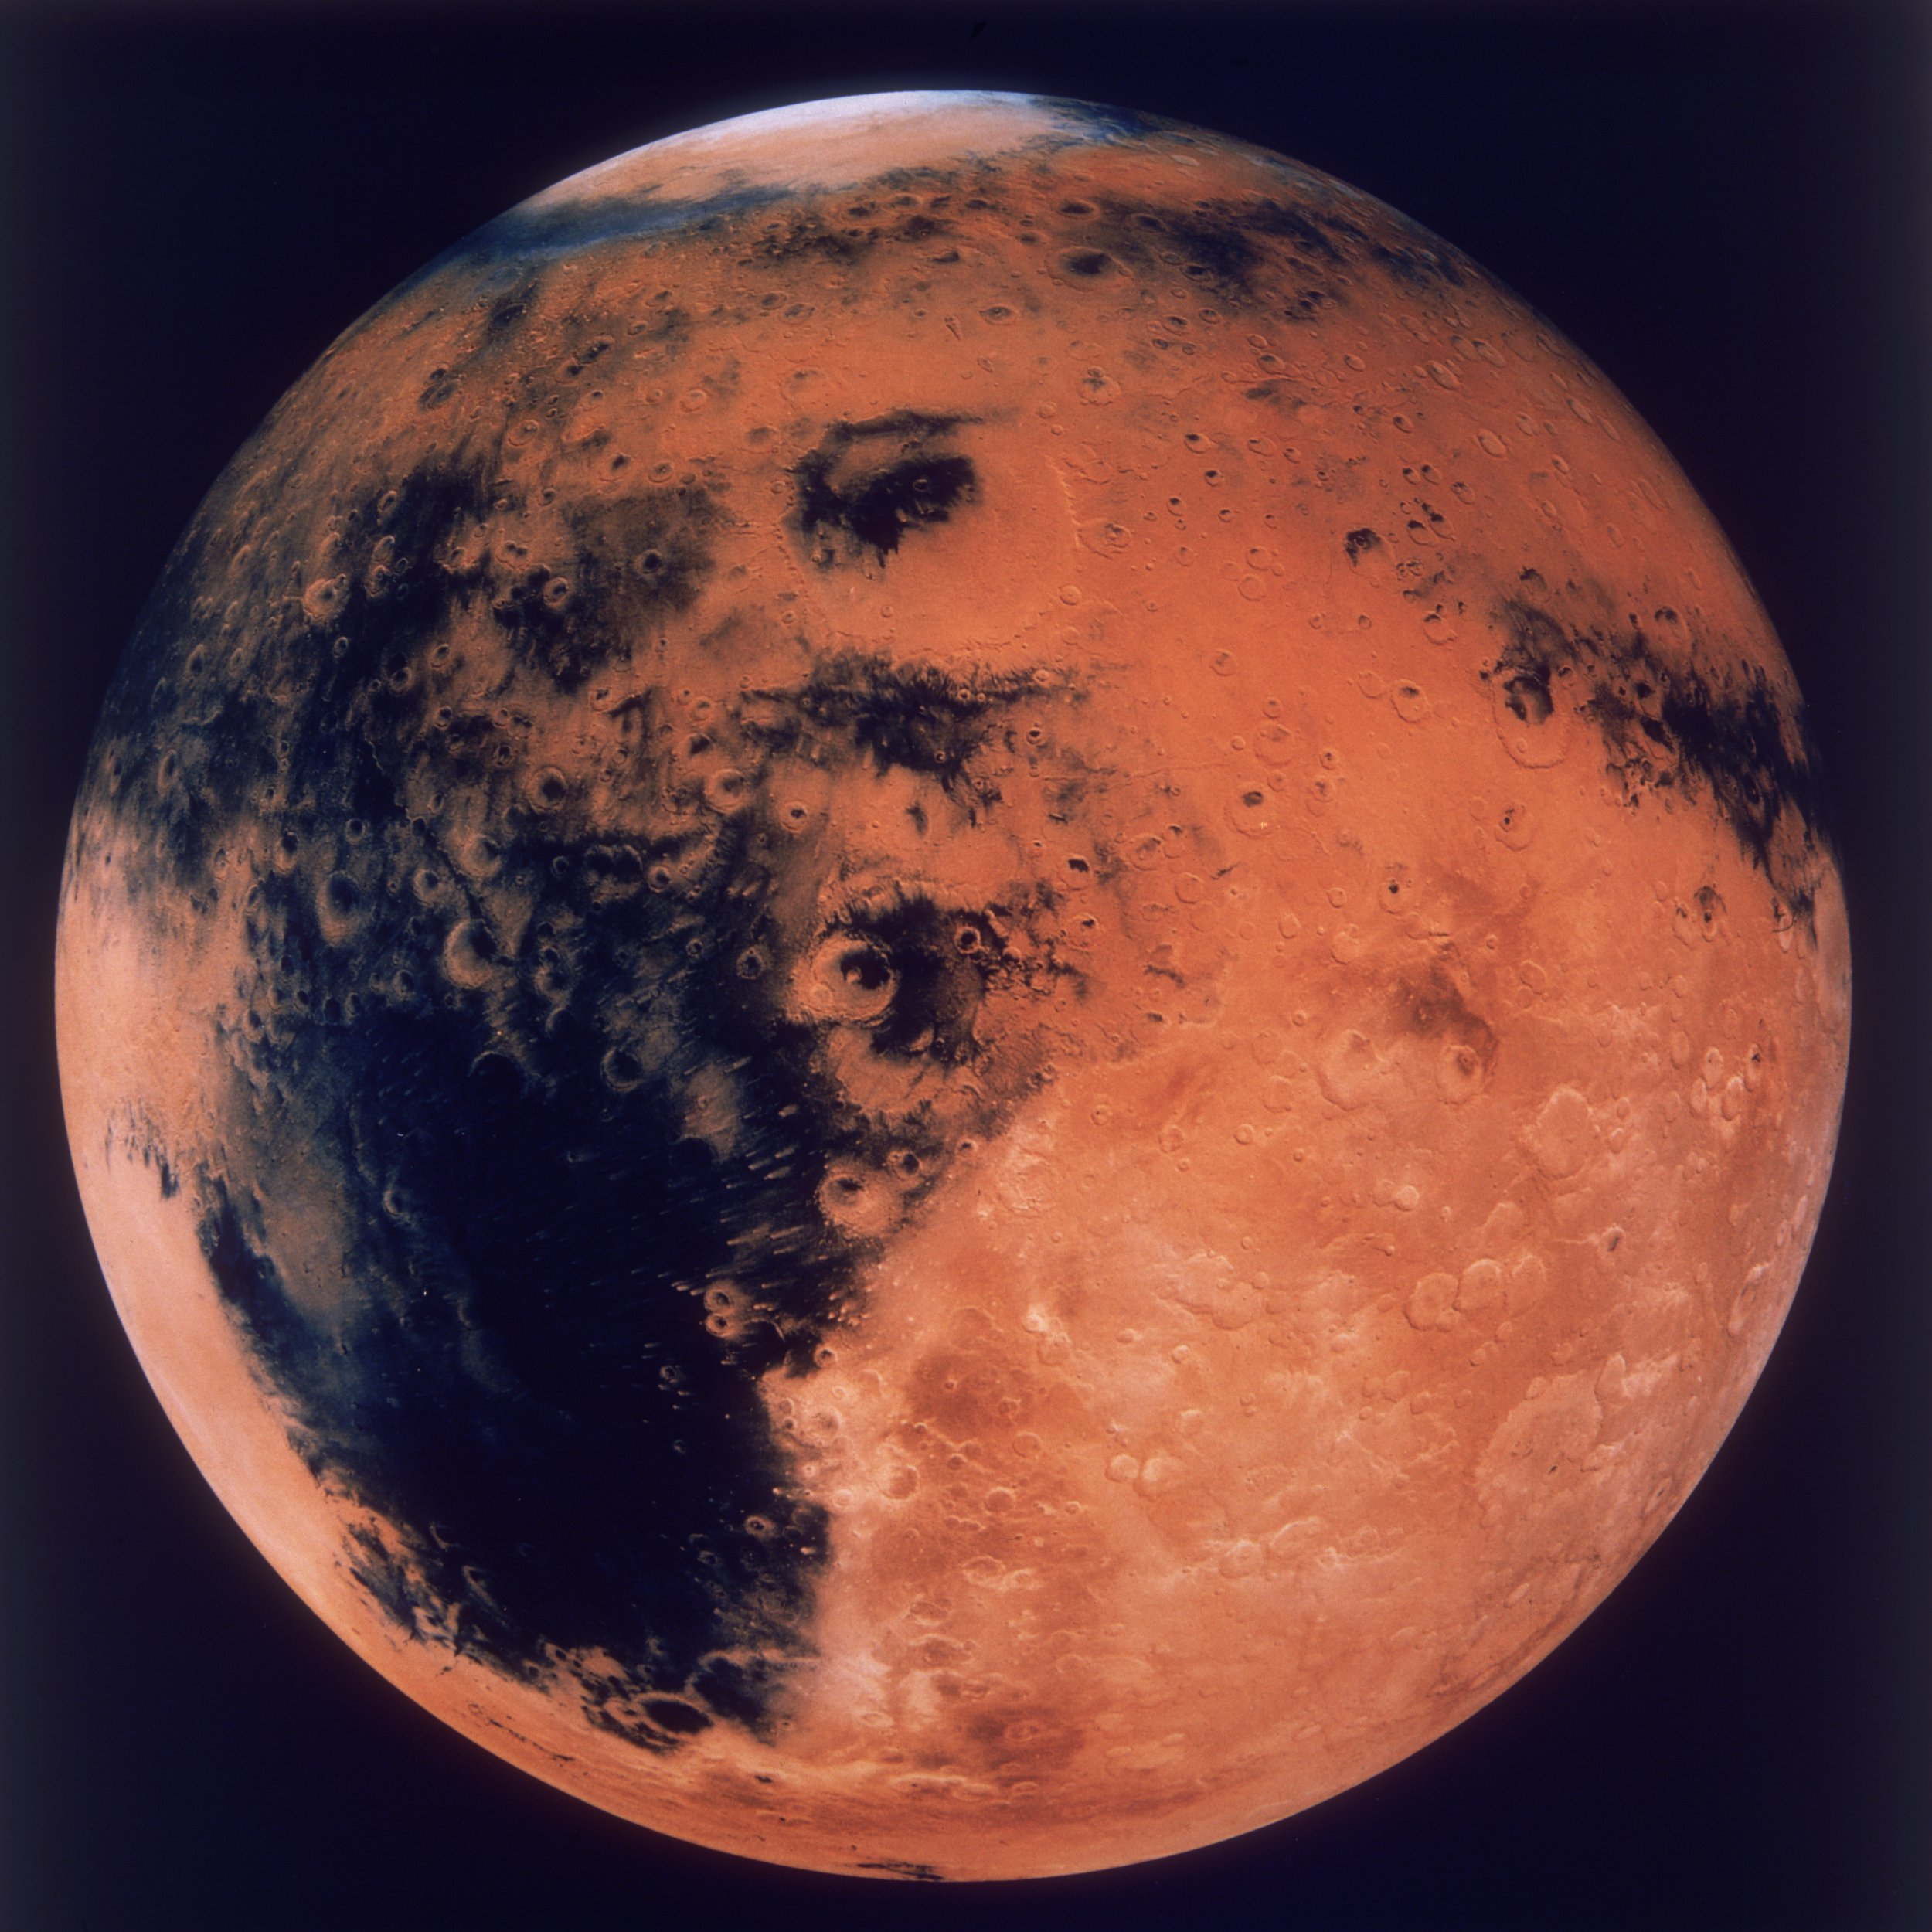 Mars opposition 2018: How to see the Red Planet in the night sky during July